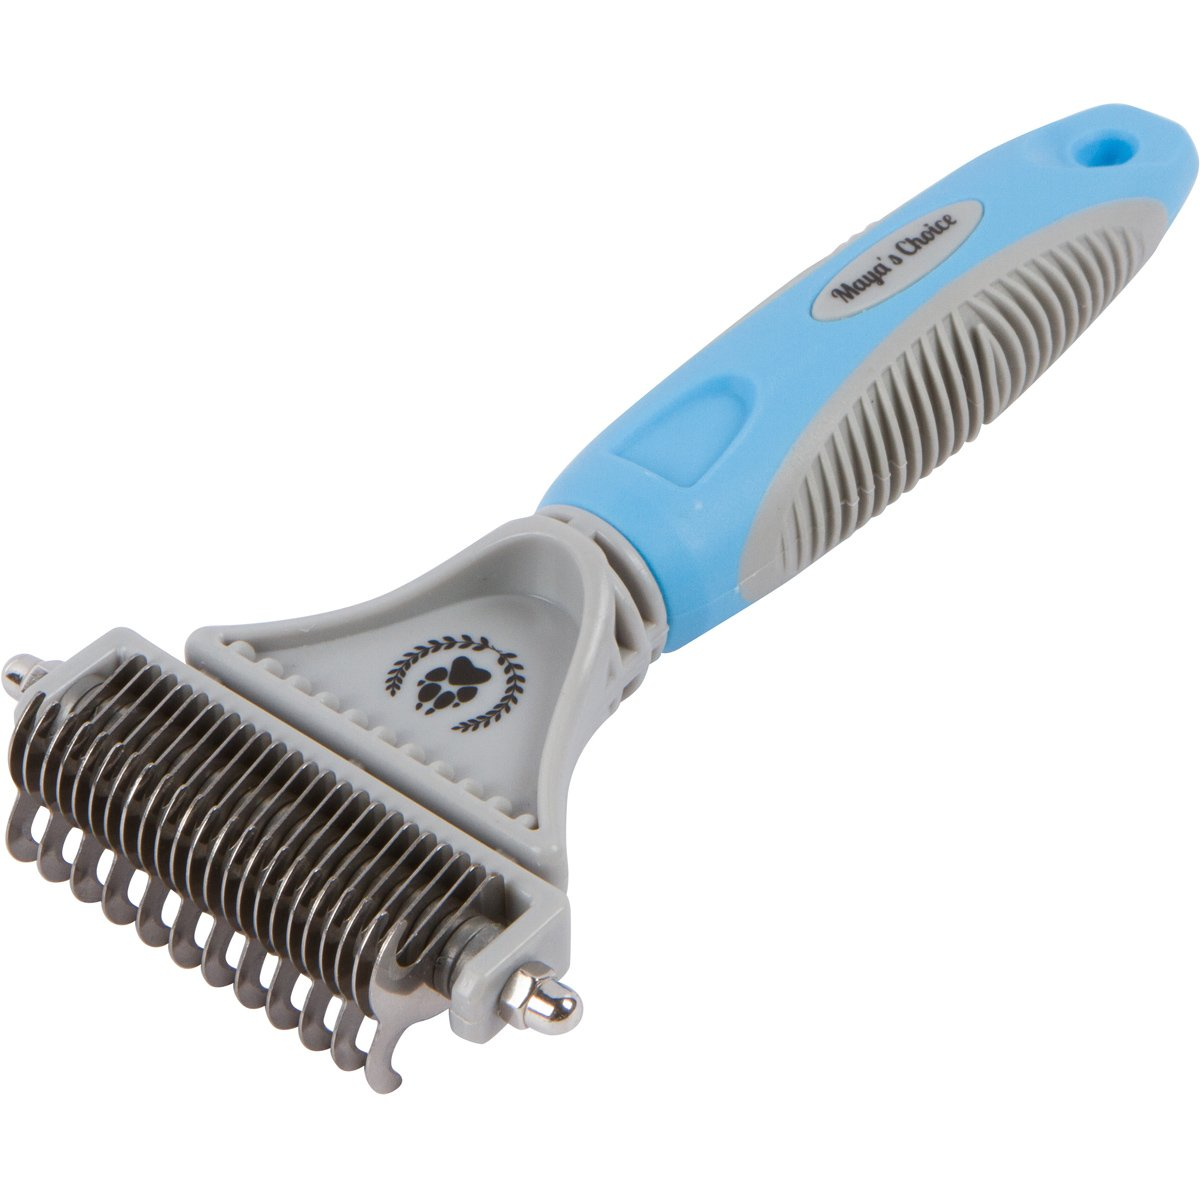 Ultimate Dog Dematting Comb - DIY Grooming Tool for Small Dogs, Large Dogs, and Cats